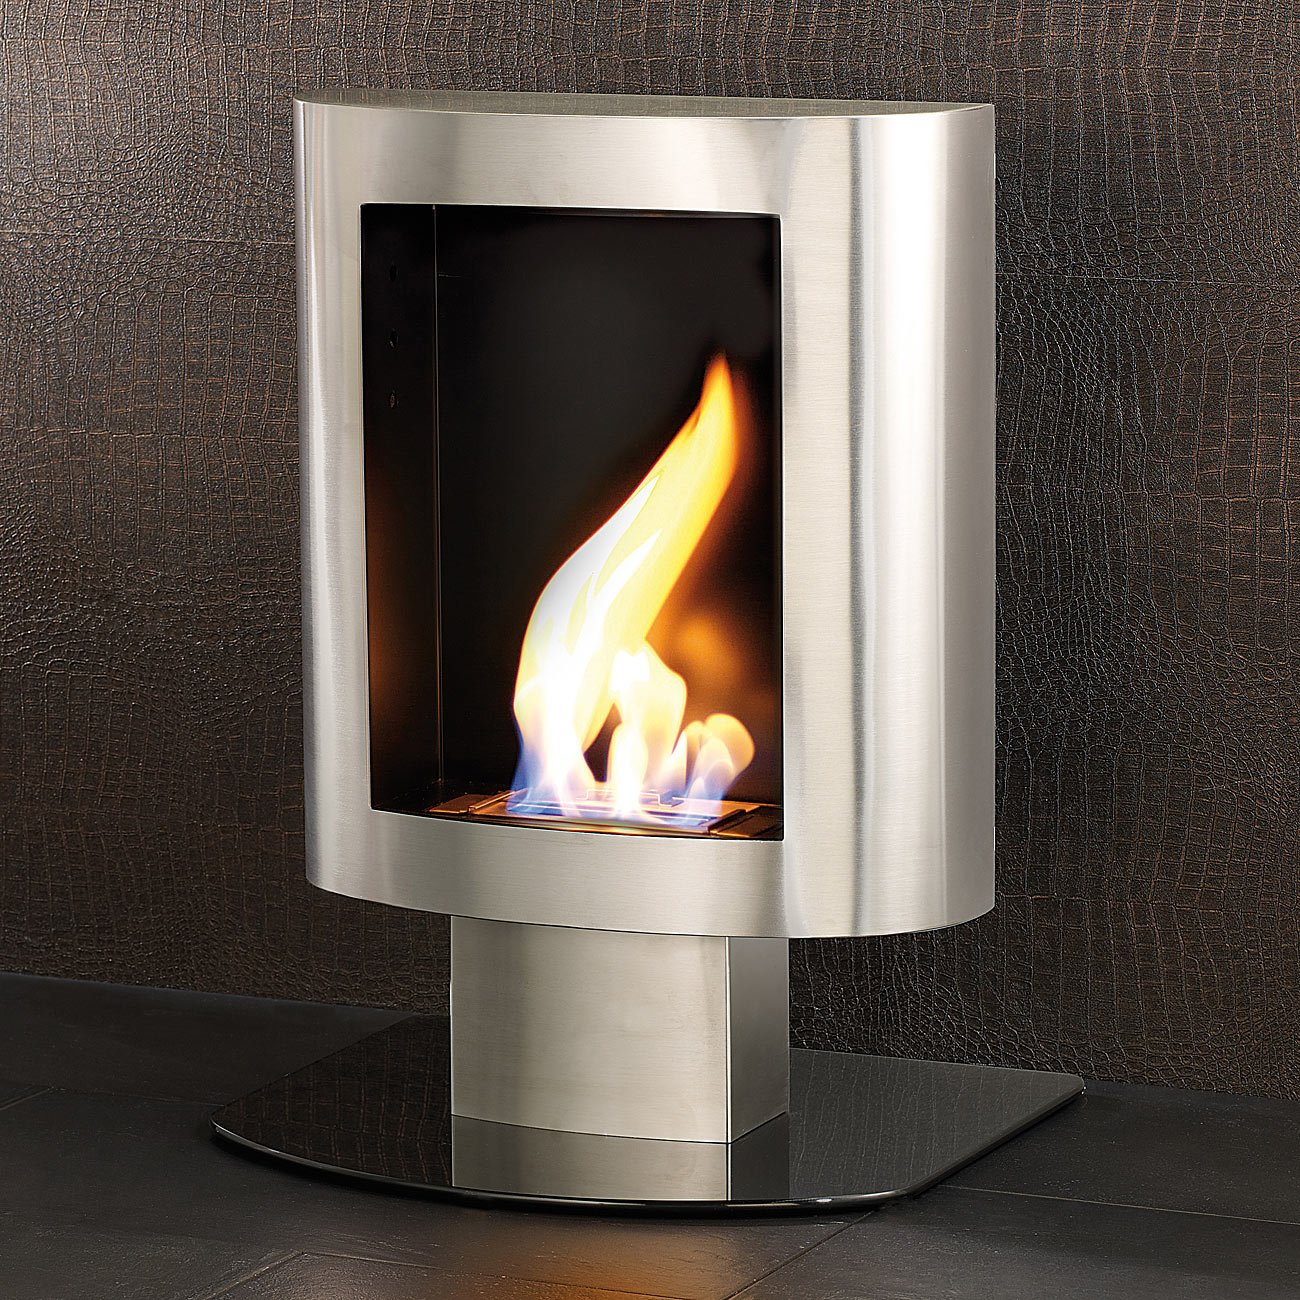 Ethanol Für Kamin carlo decorative stove bio ethanol stainless steel for wall